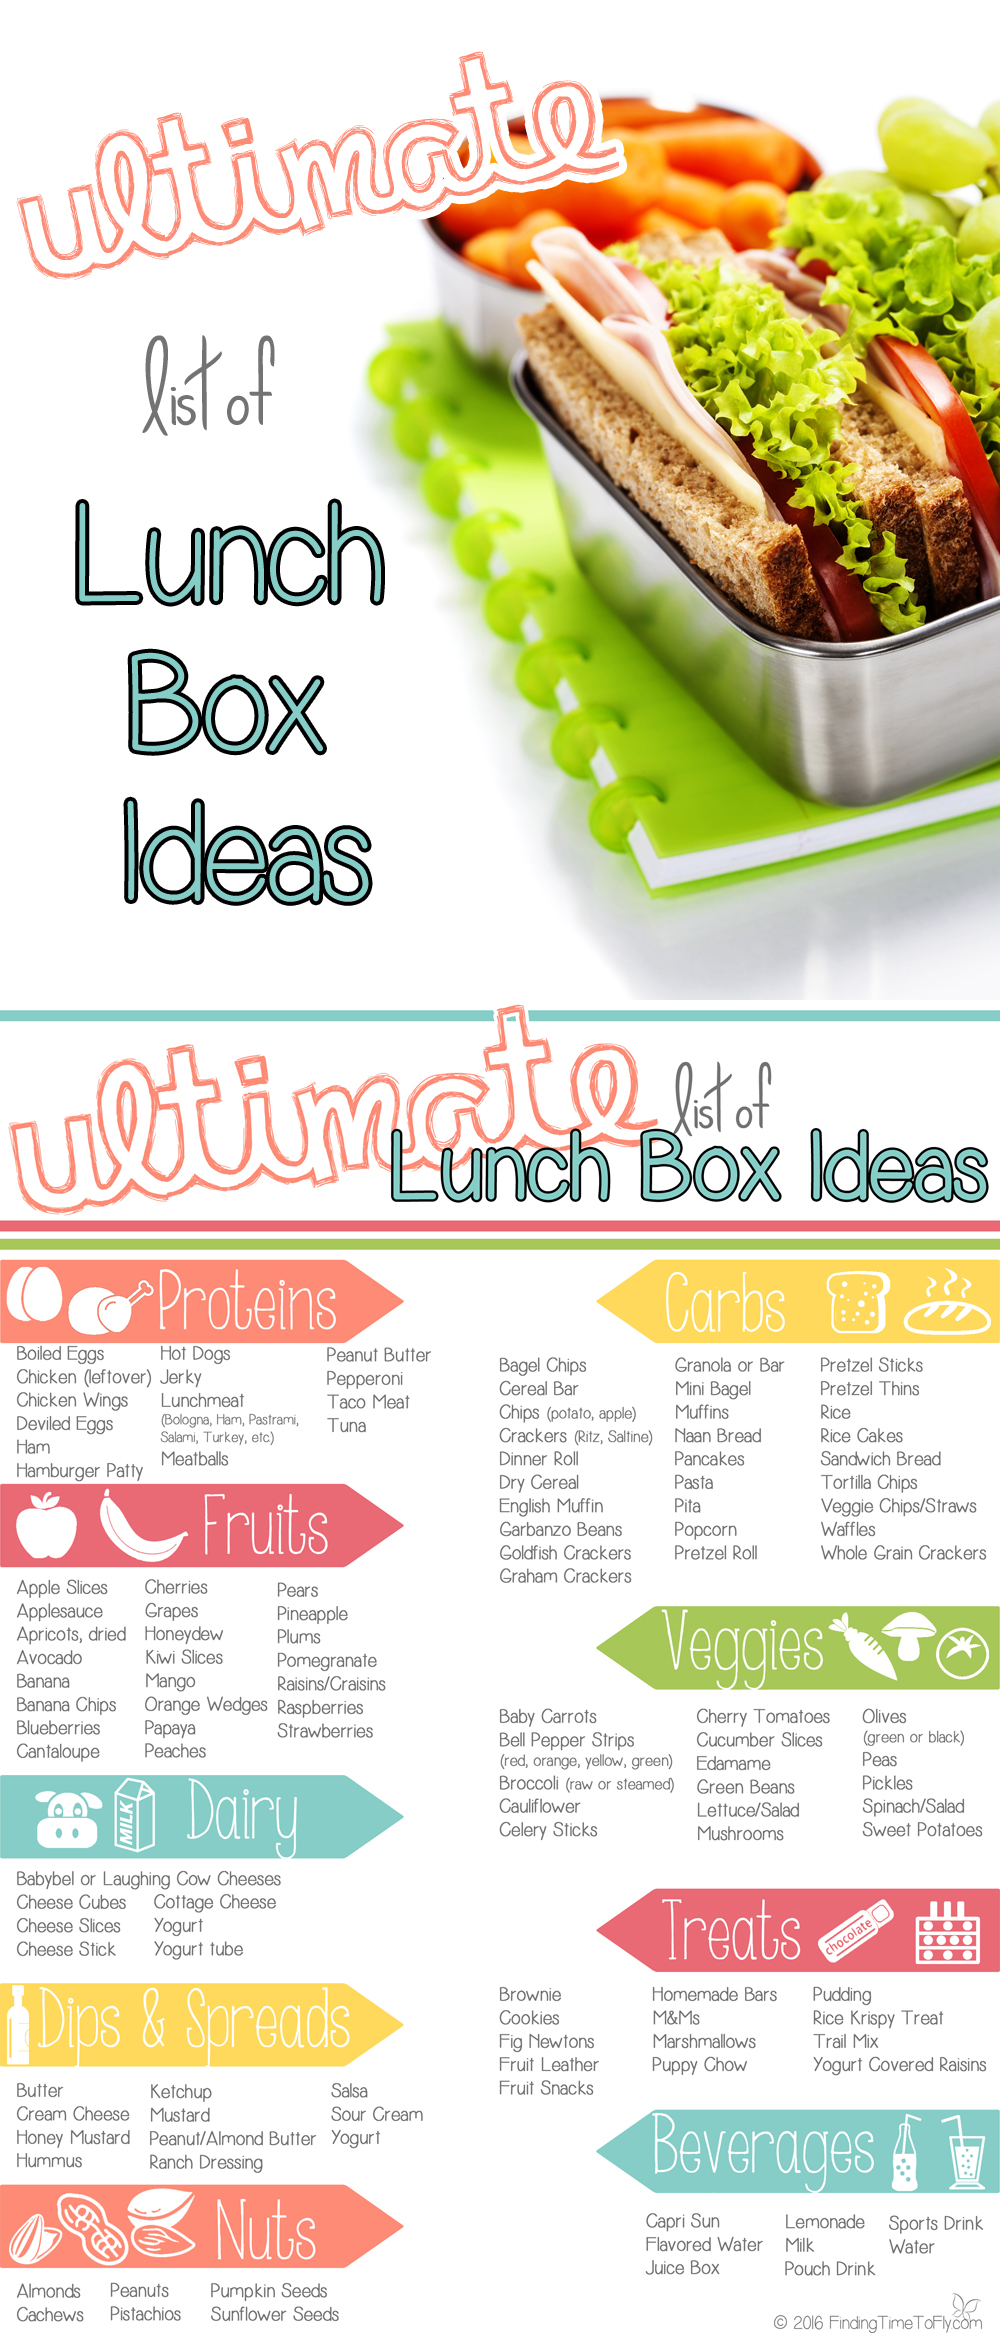 Ultimate List Of Lunch Box Ideas Finding Time To Fly